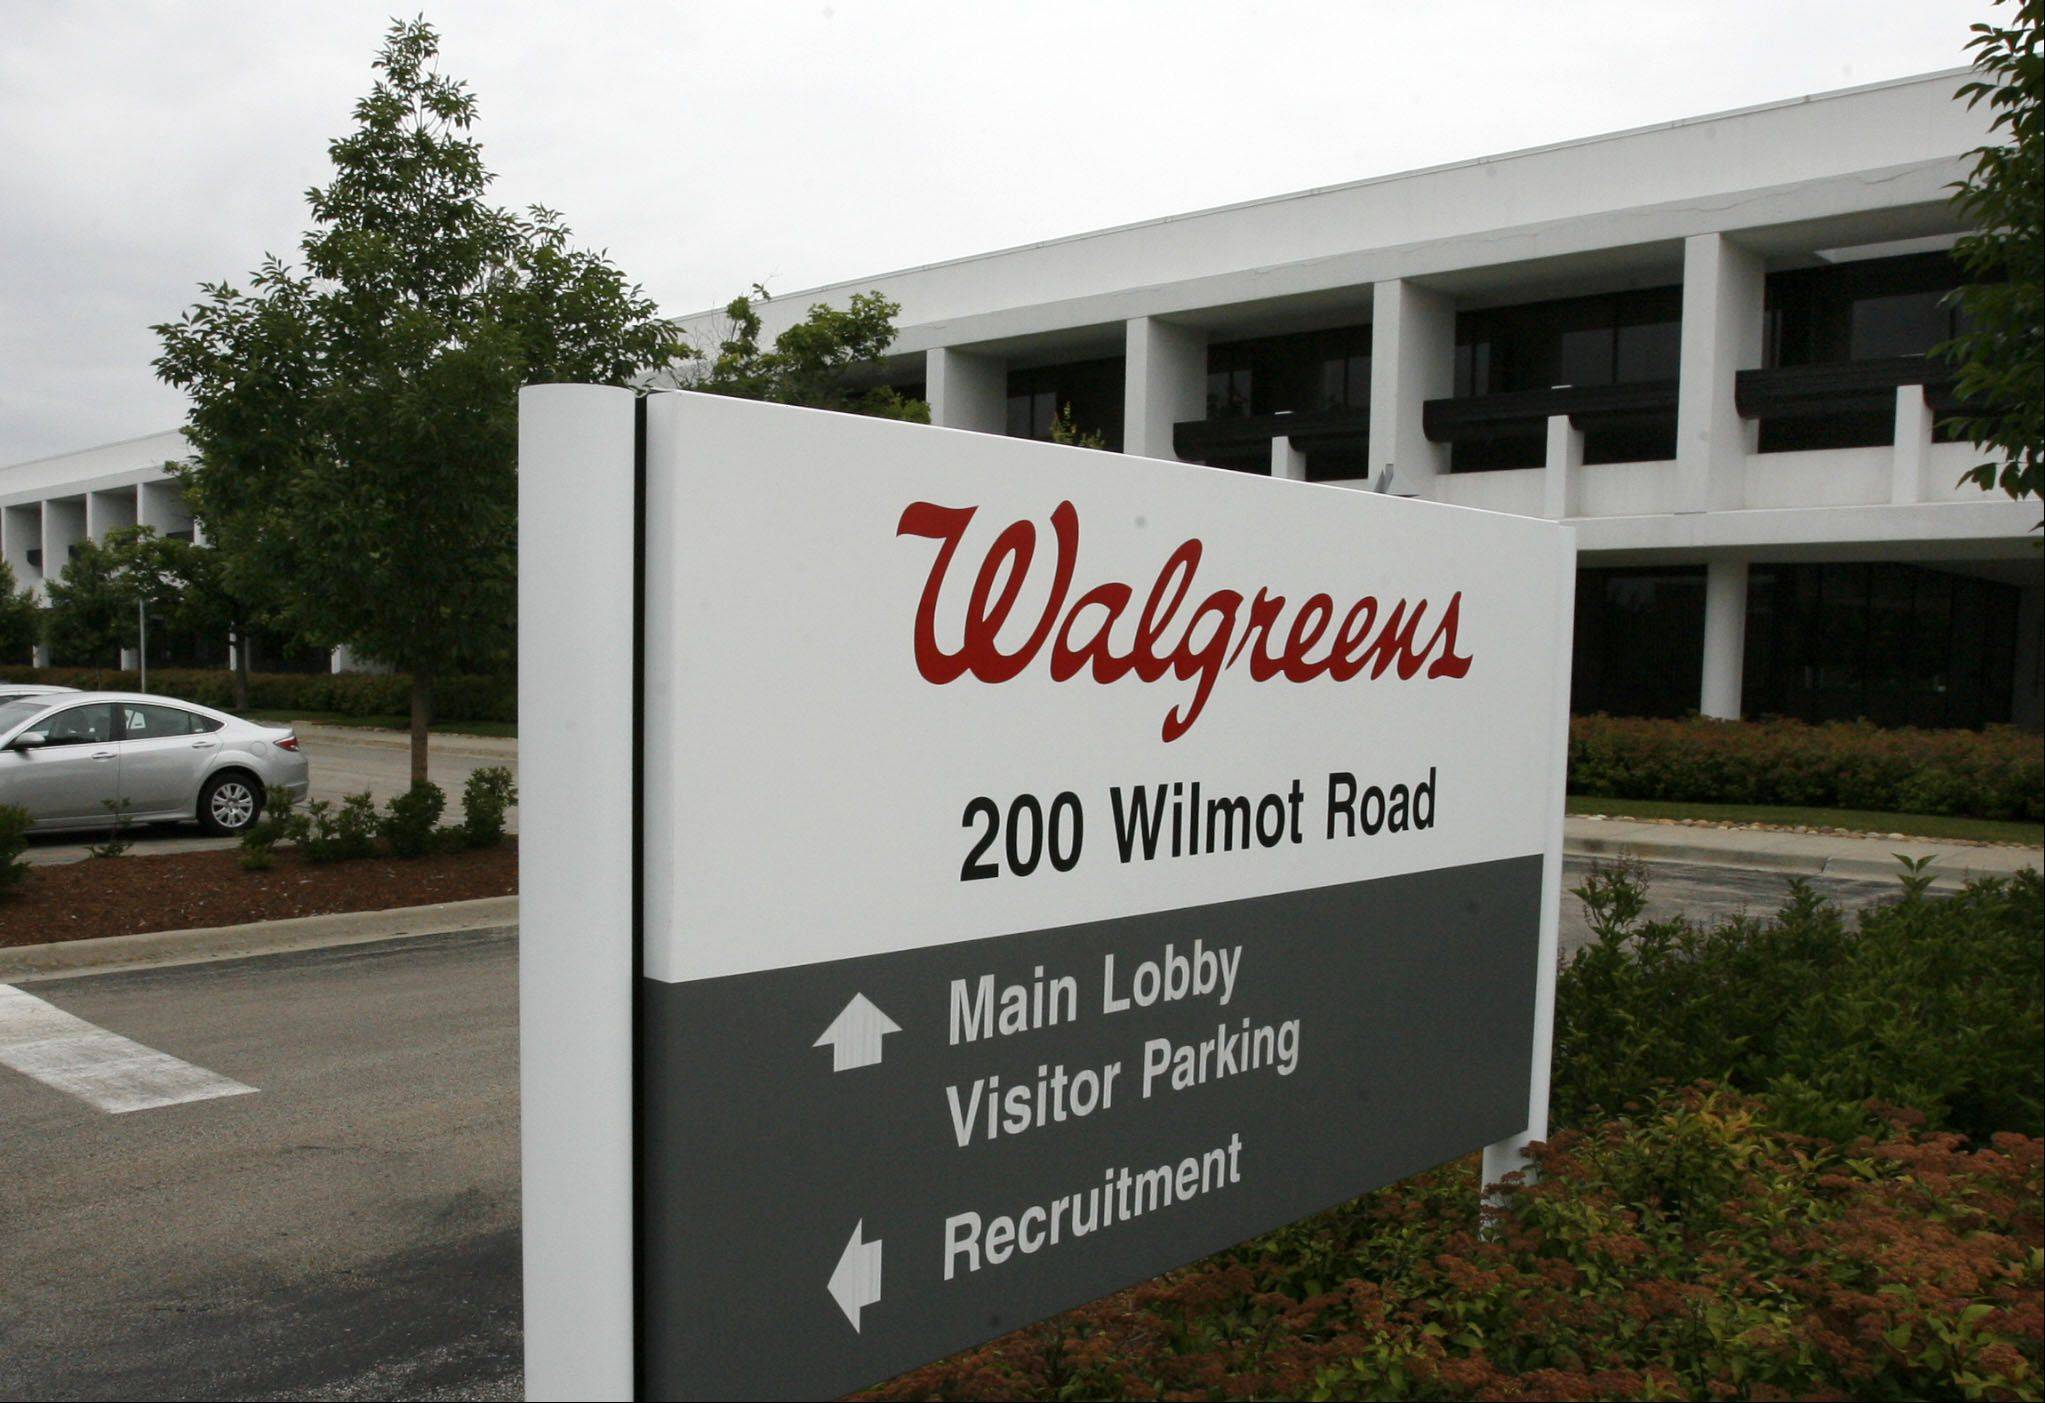 Walgreen Co., the largest U.S. drugstore retailer, reported a decline in fiscal fourth-quarter earnings after the loss of customers to rivals hurt sales.